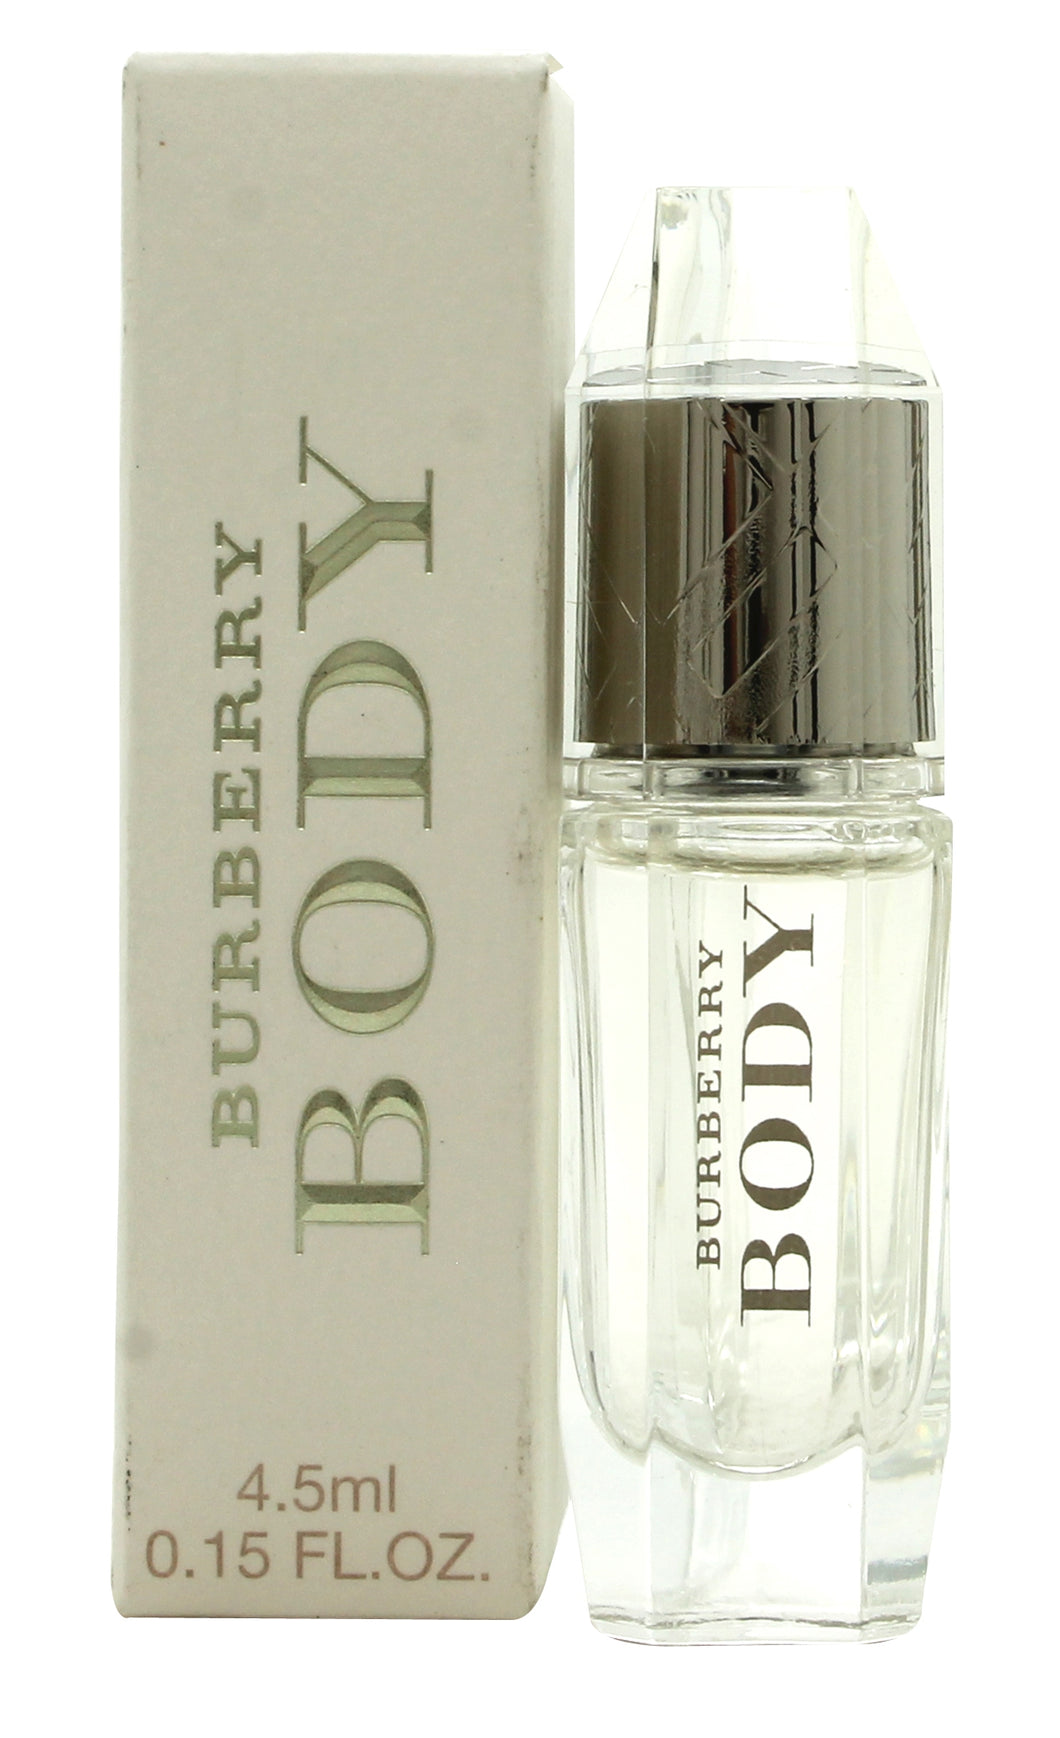 Burberry Body Eau de Toilette 4.5ml Mini